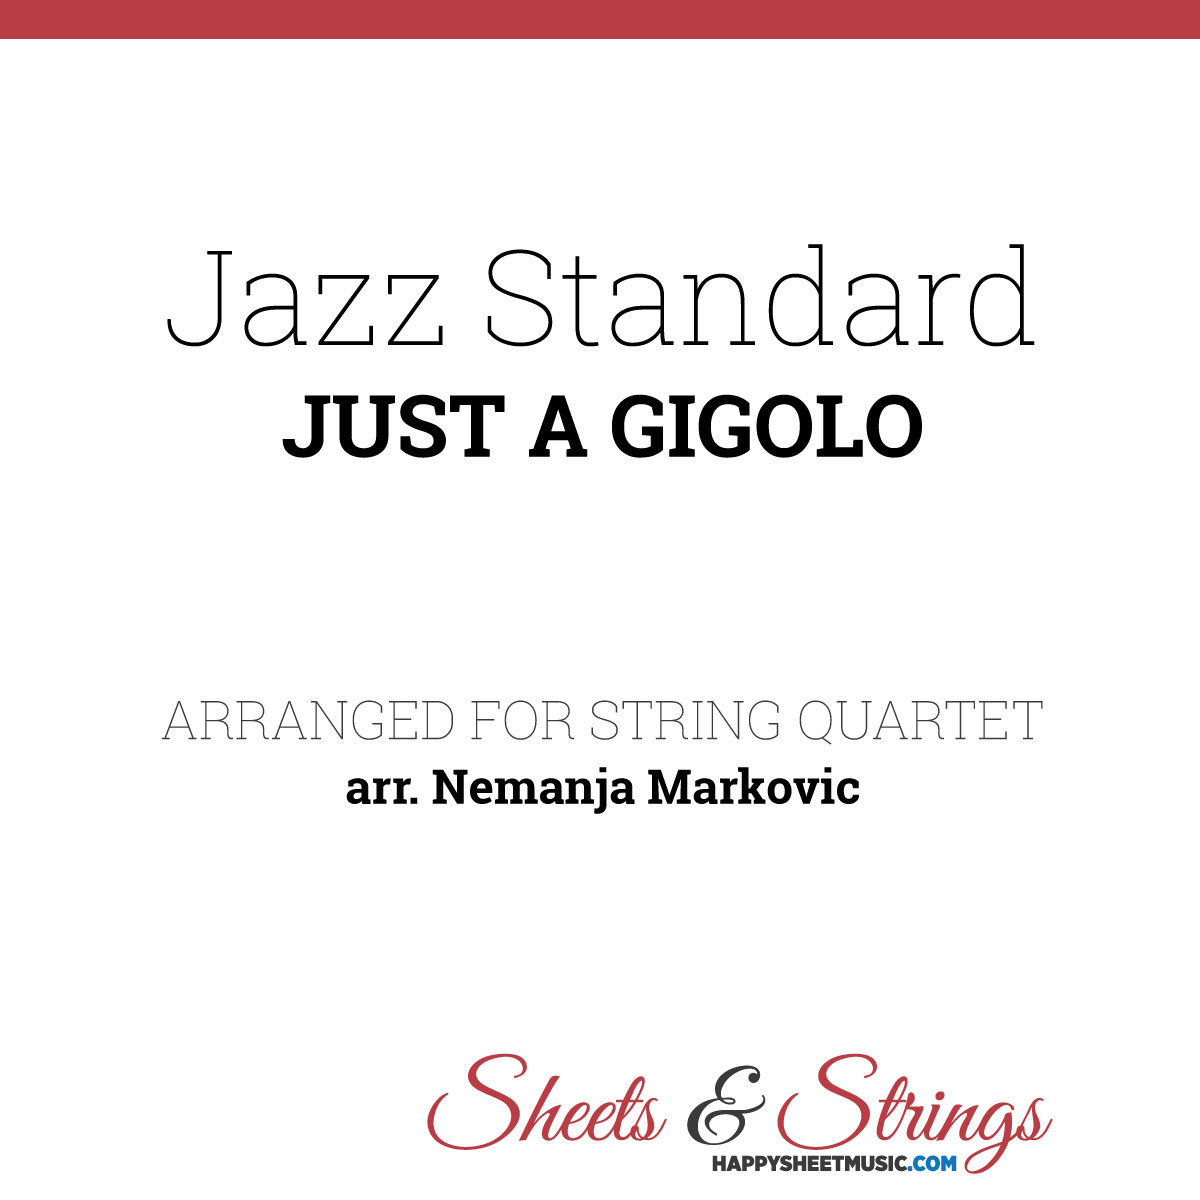 Jazz Standard - Just A Gigolo - Sheet Music for String Quartet - Music Arrangement for String Quartet